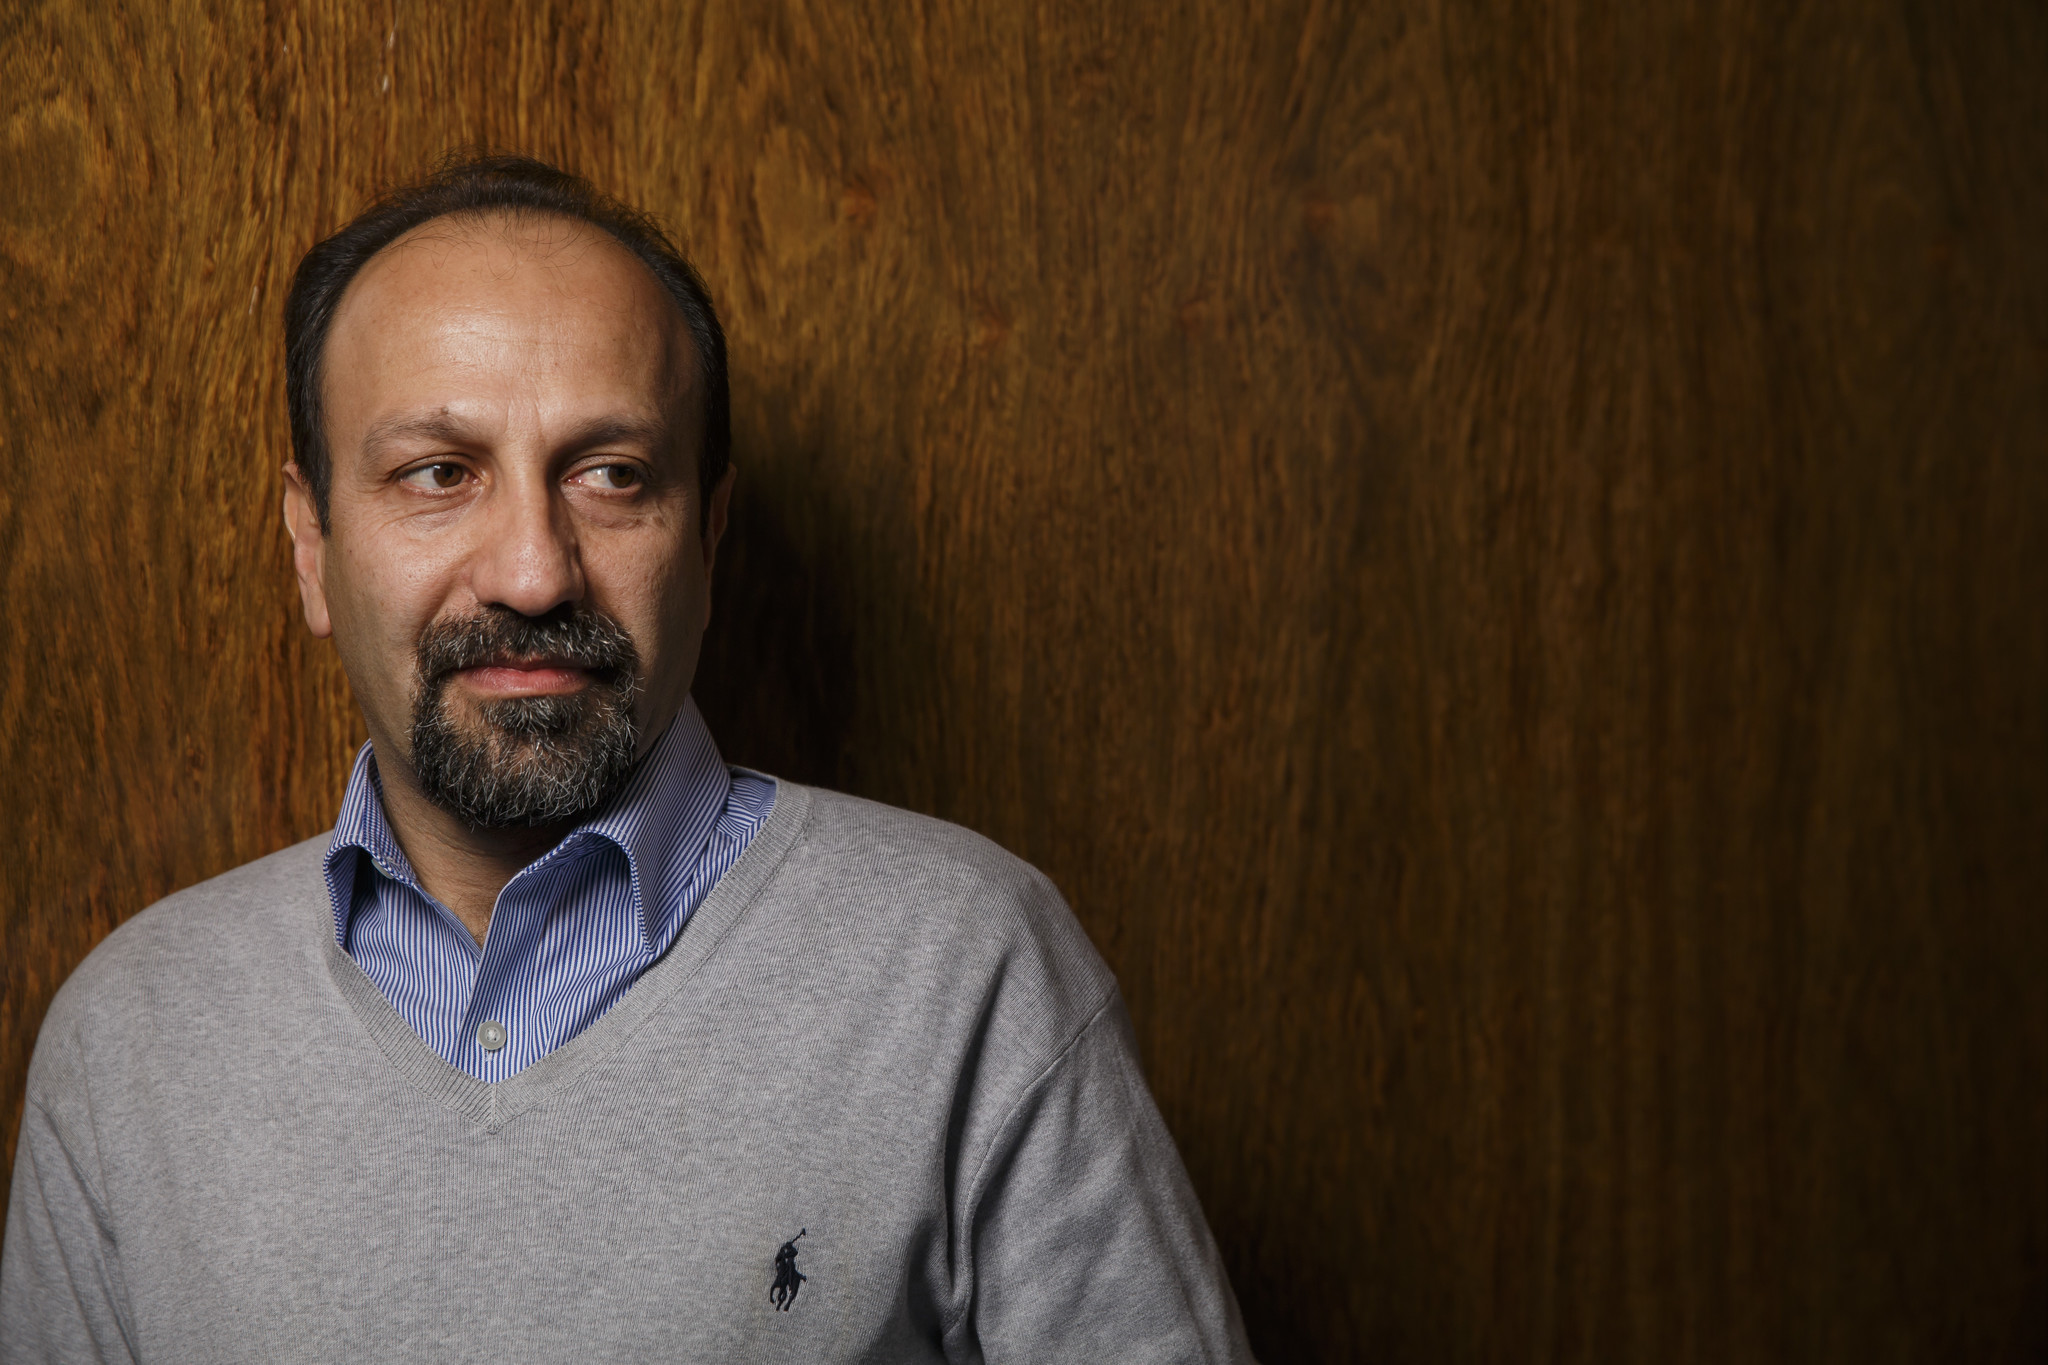 Iranian filmmaker Asghar Farhadi in Los Angeles in early 2017. (Marcus Yam / Los Angeles Times)